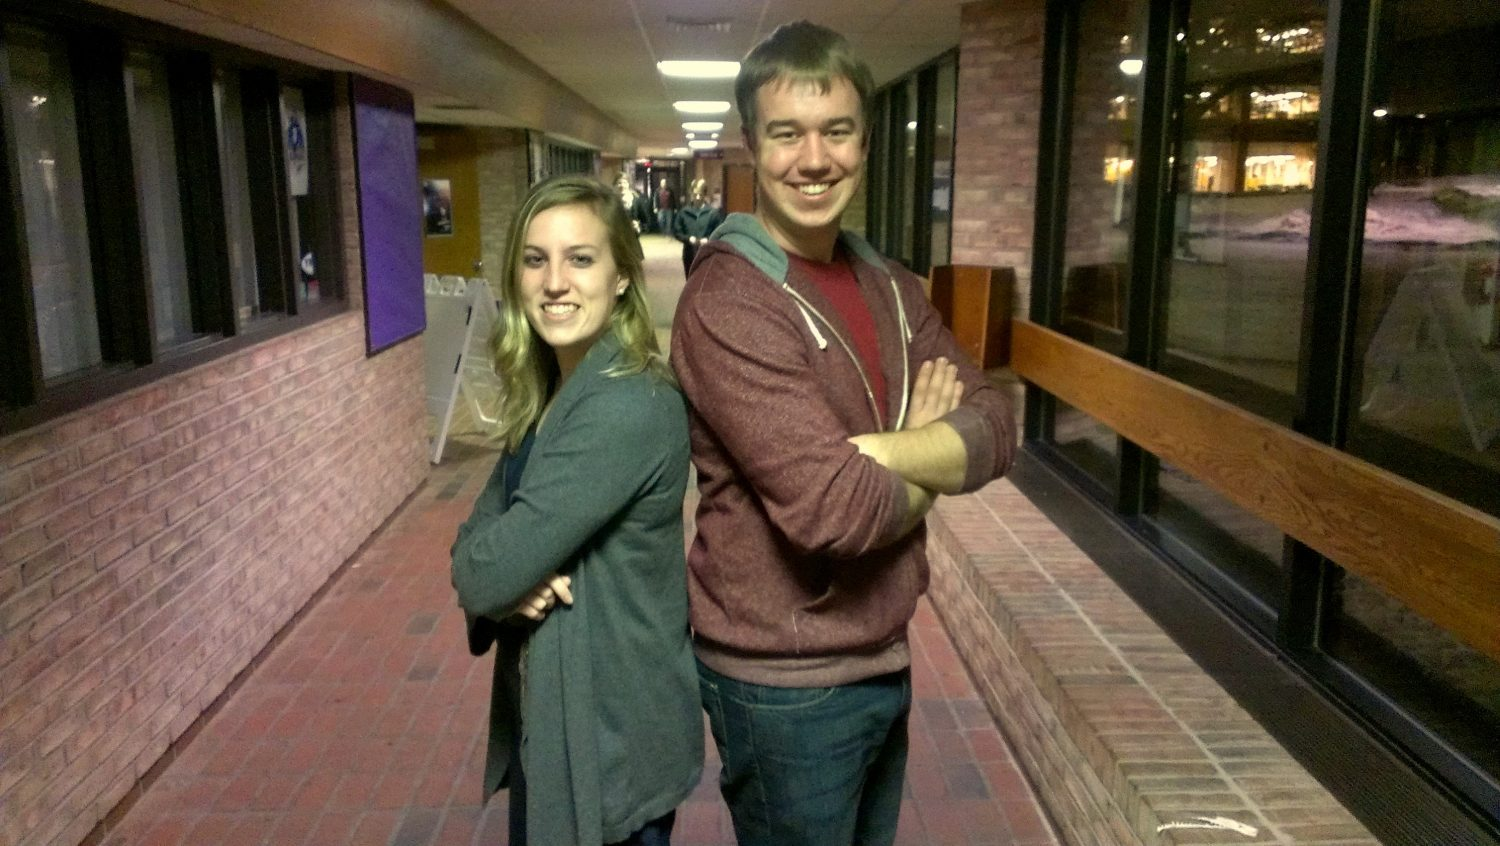 Saying goodbye: Editor-in-Chief Ryan Struyk and Managing Editor Jess Koster have their final words